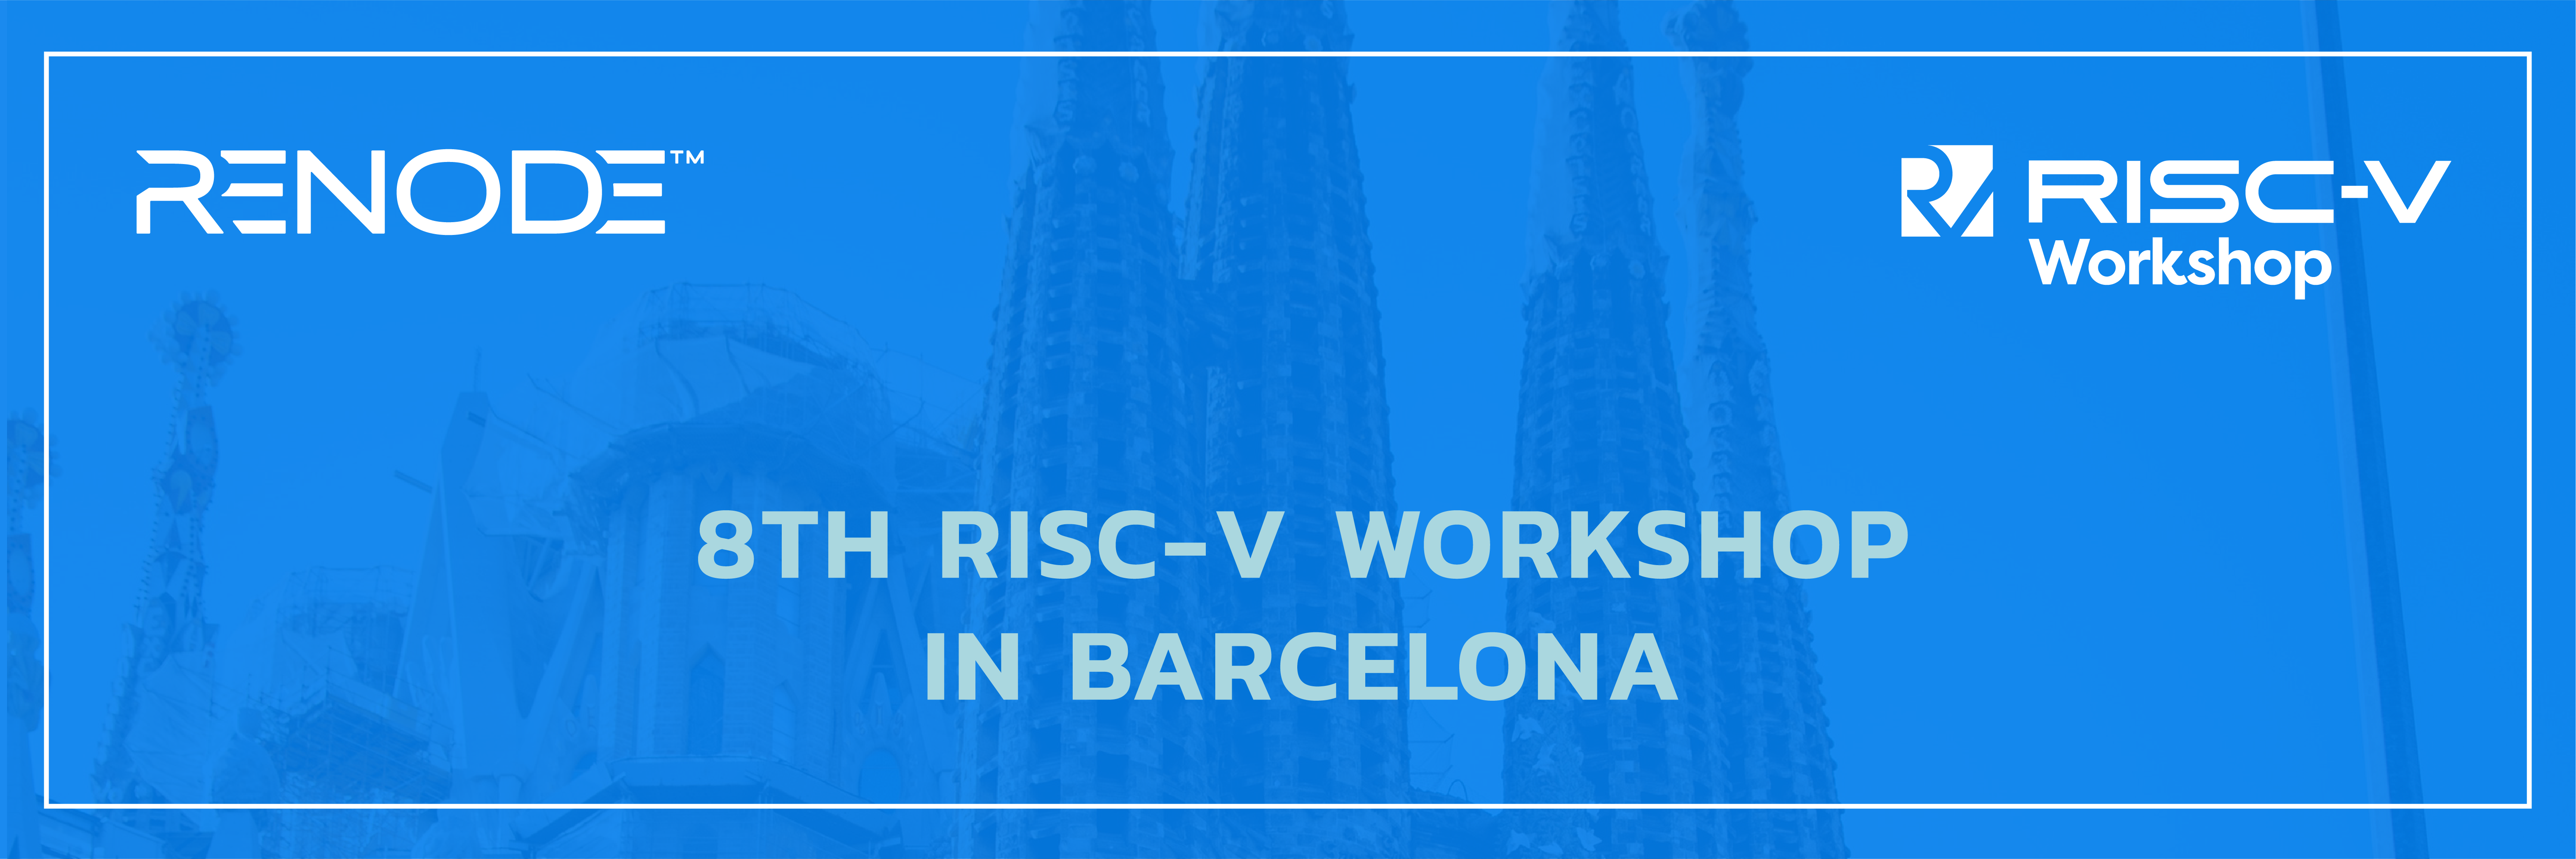 64-bit RISC-V support in Renode to be presented at the 8th RISC-V Workshop in Barcelona